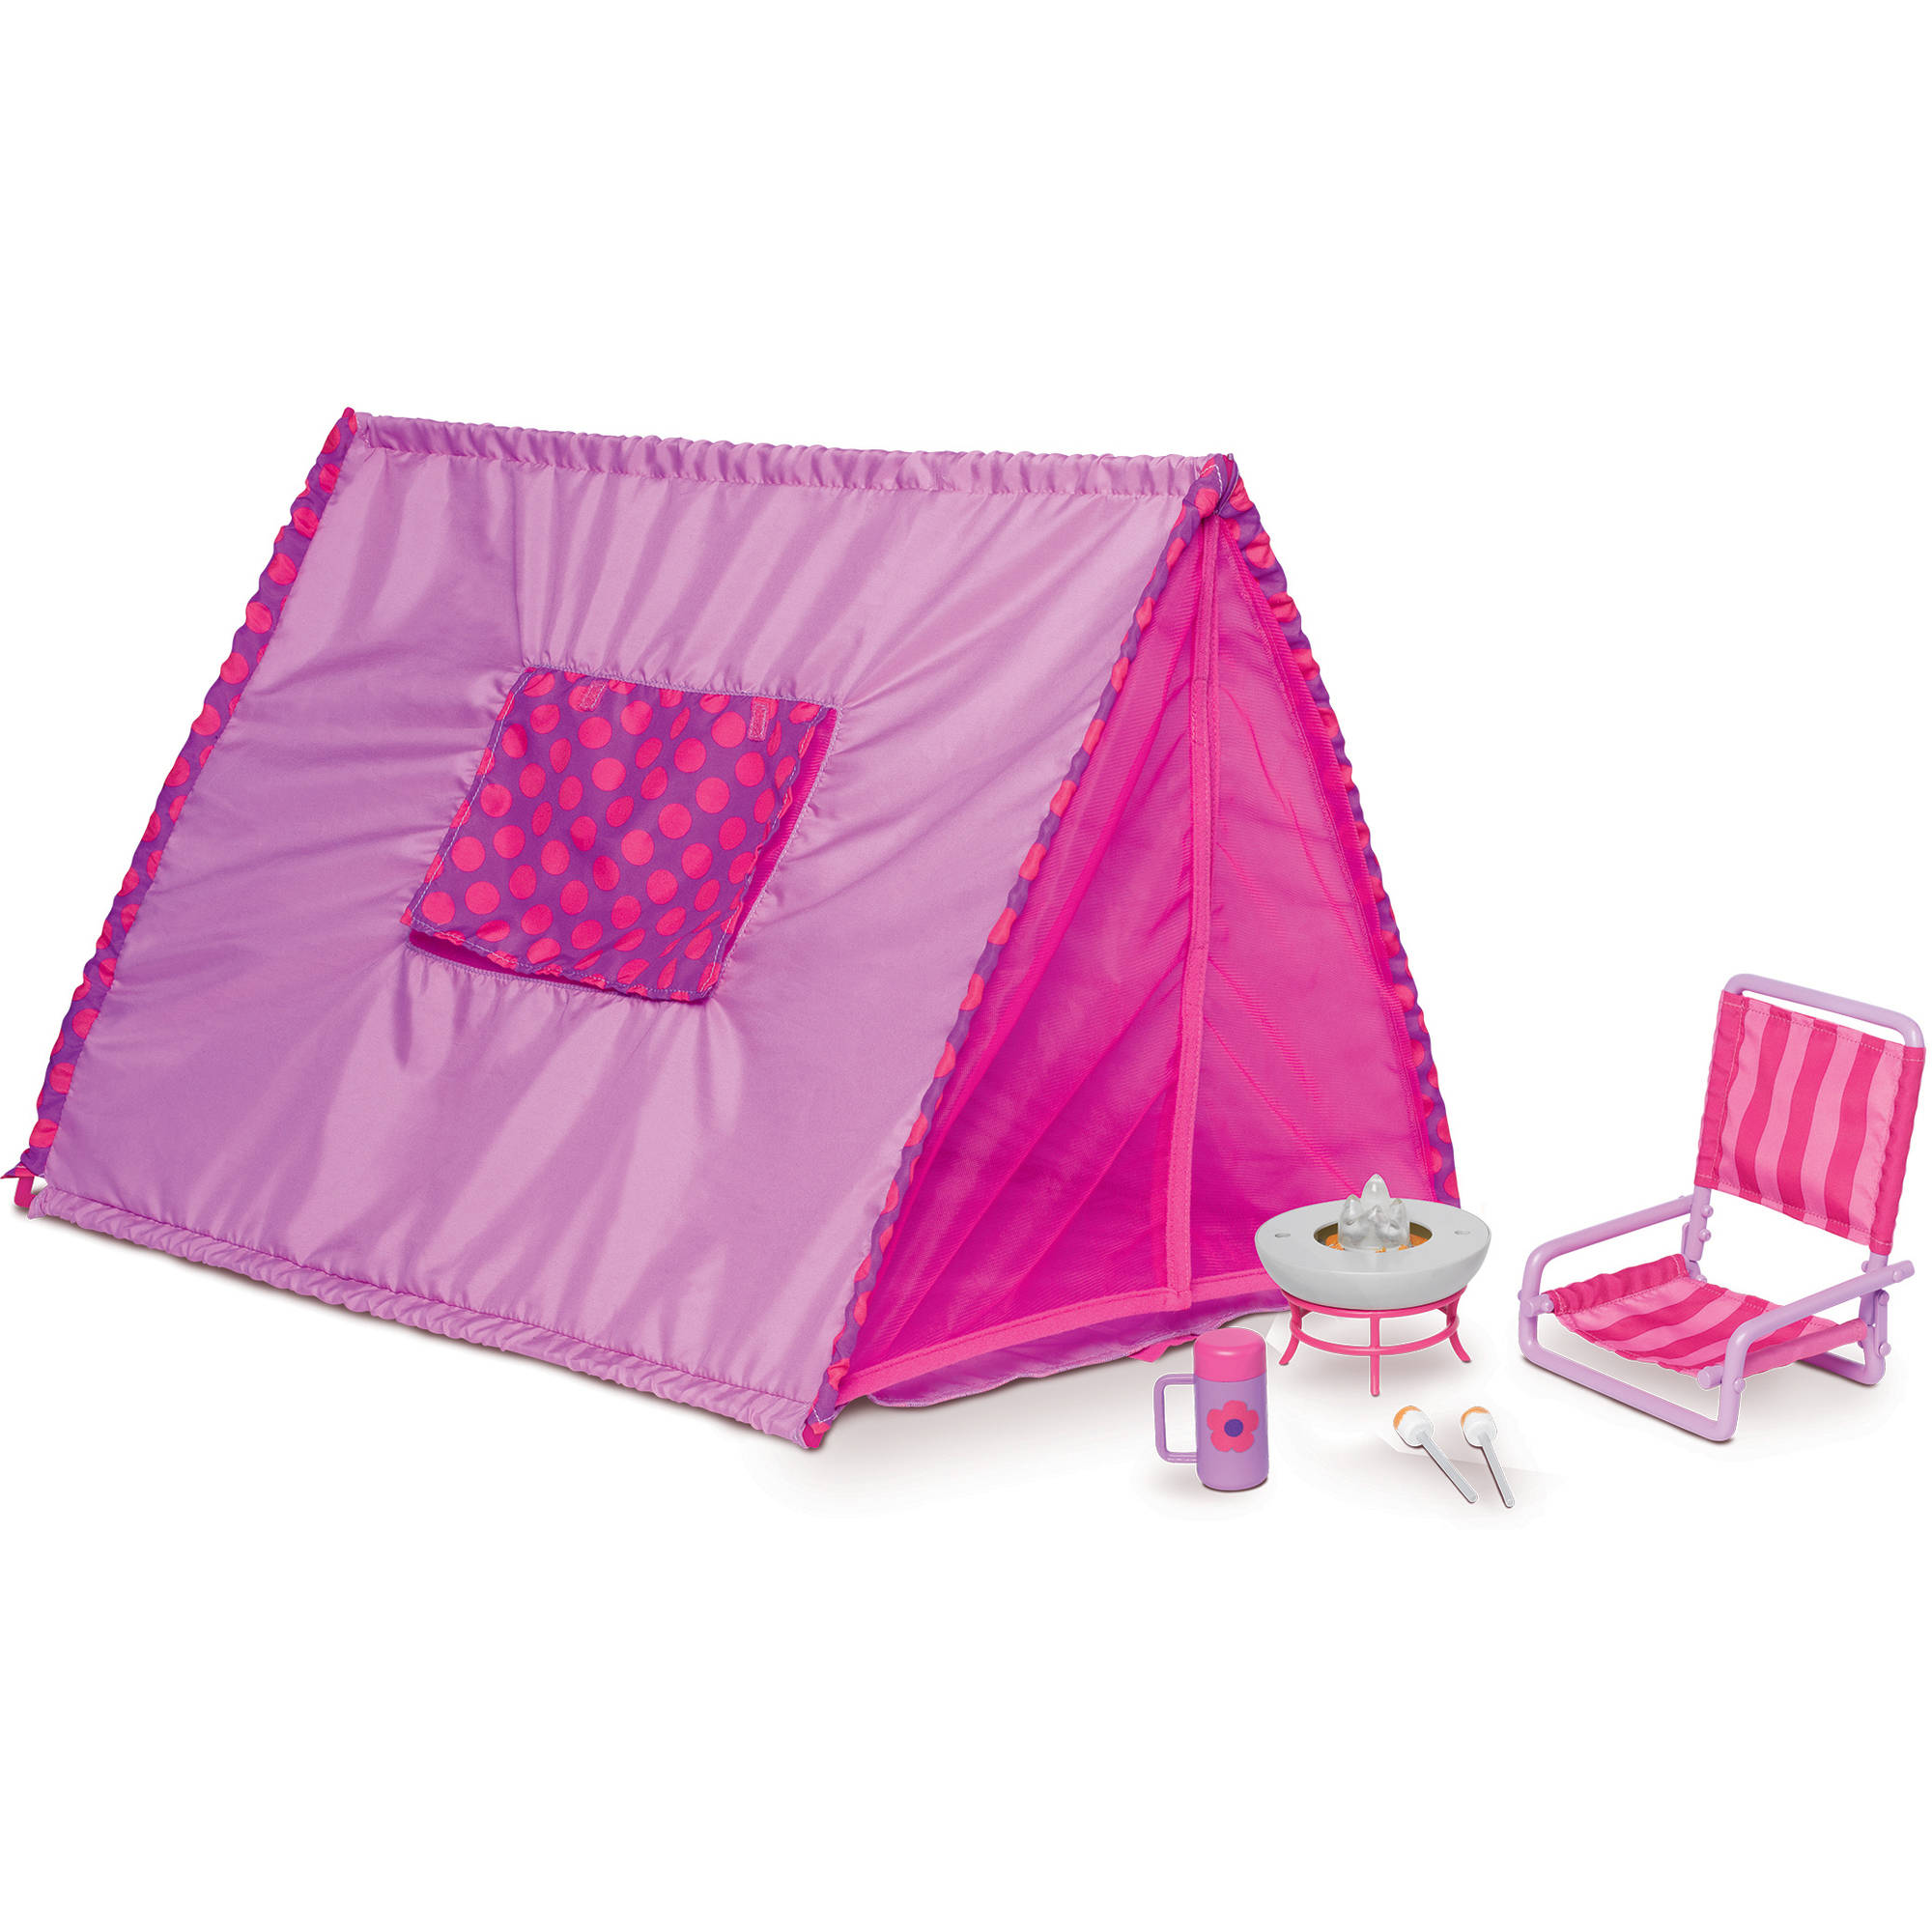 My Life As Doll Camping Set Walmart